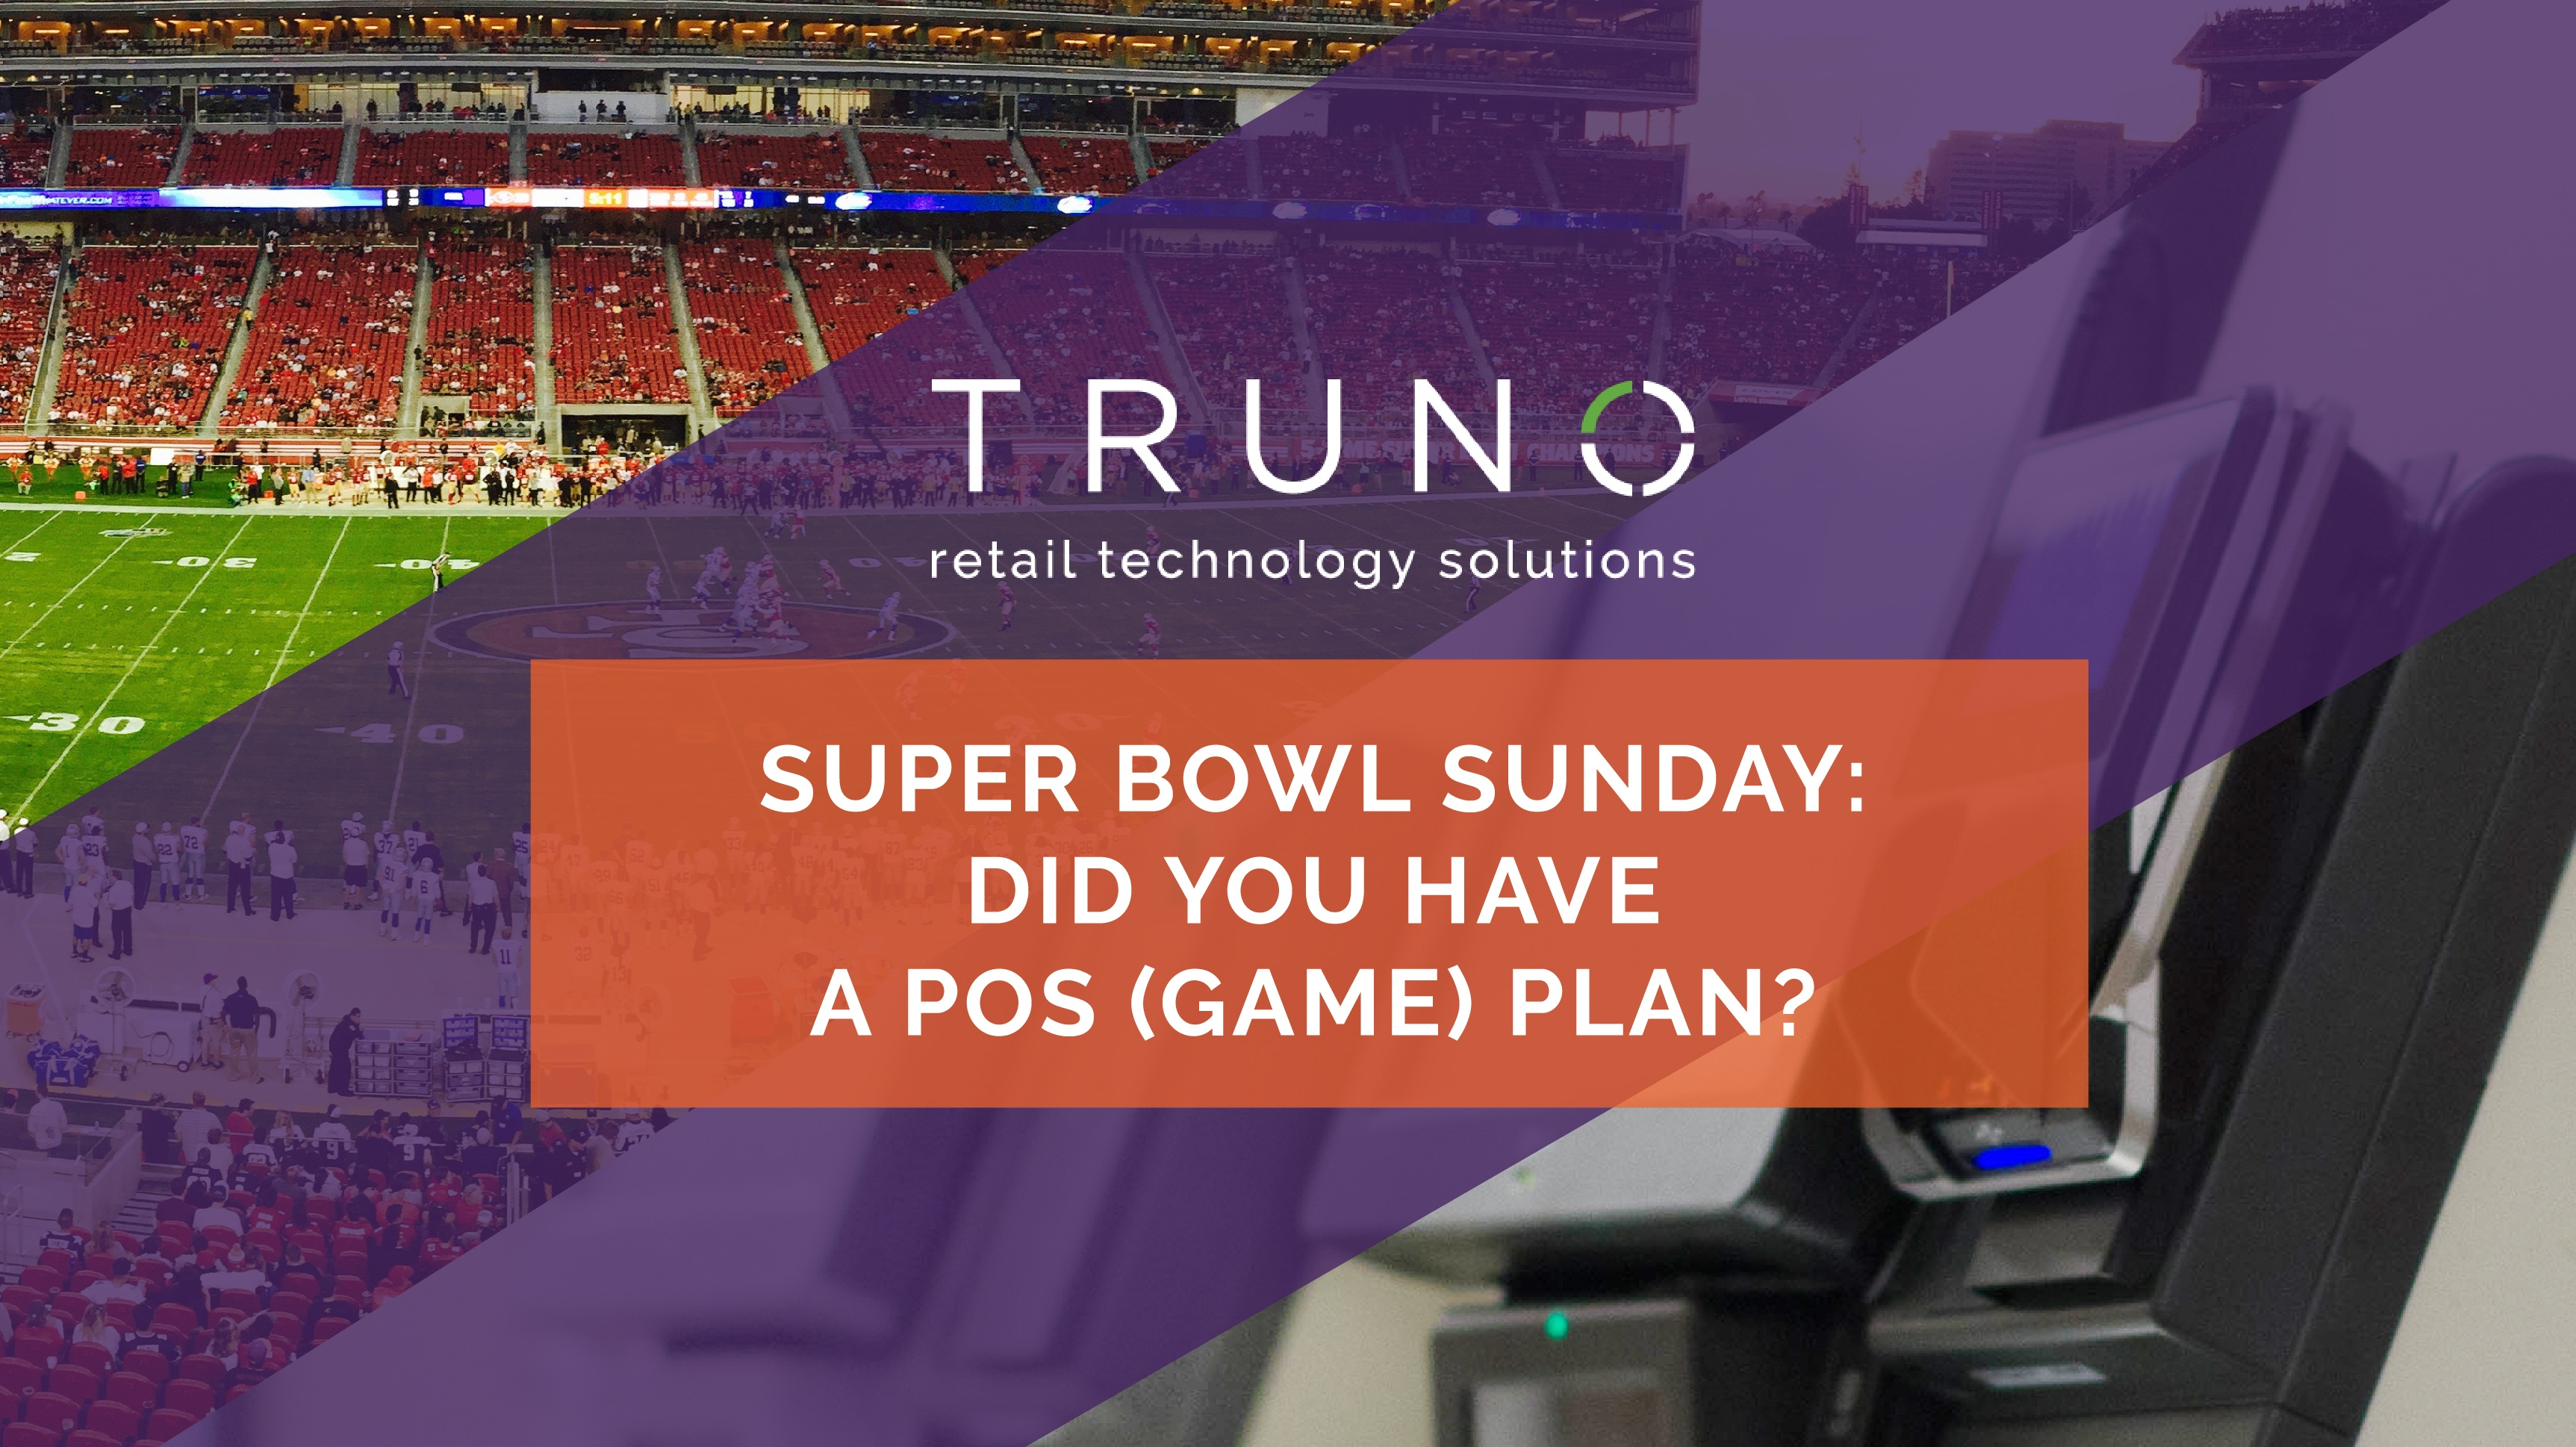 Super Bowl Sunday - Did you Have a POS (Game) Plan